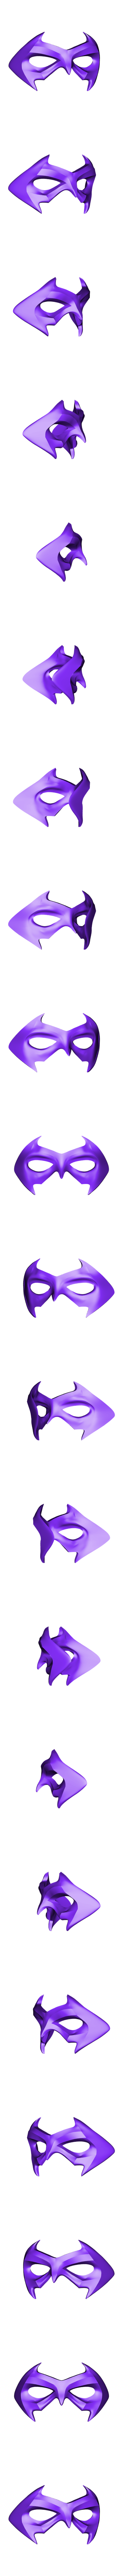 Nightwing Mask.stl Download STL file Nightwing Chest Armor with Free Mask • 3D print design, VillainousPropShop